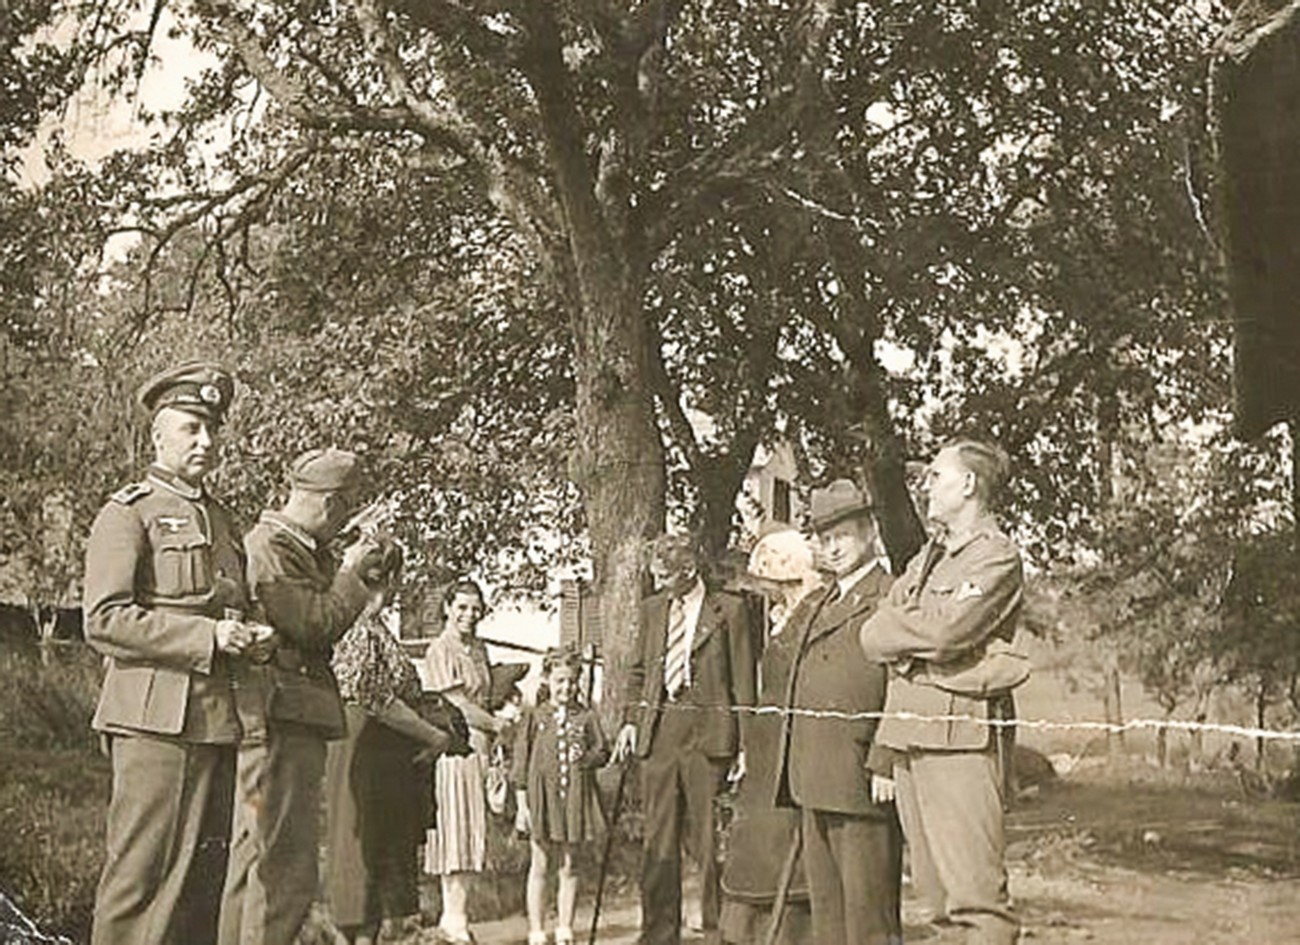 The occupier's units, which were stationed in Rogaška Slatina, often came to the nearby countryside. This photograph was taken in 1942, when three Germans visited Krumpak's shop in Cerovec. Published courtesy of the Krumpak family, who own the original.